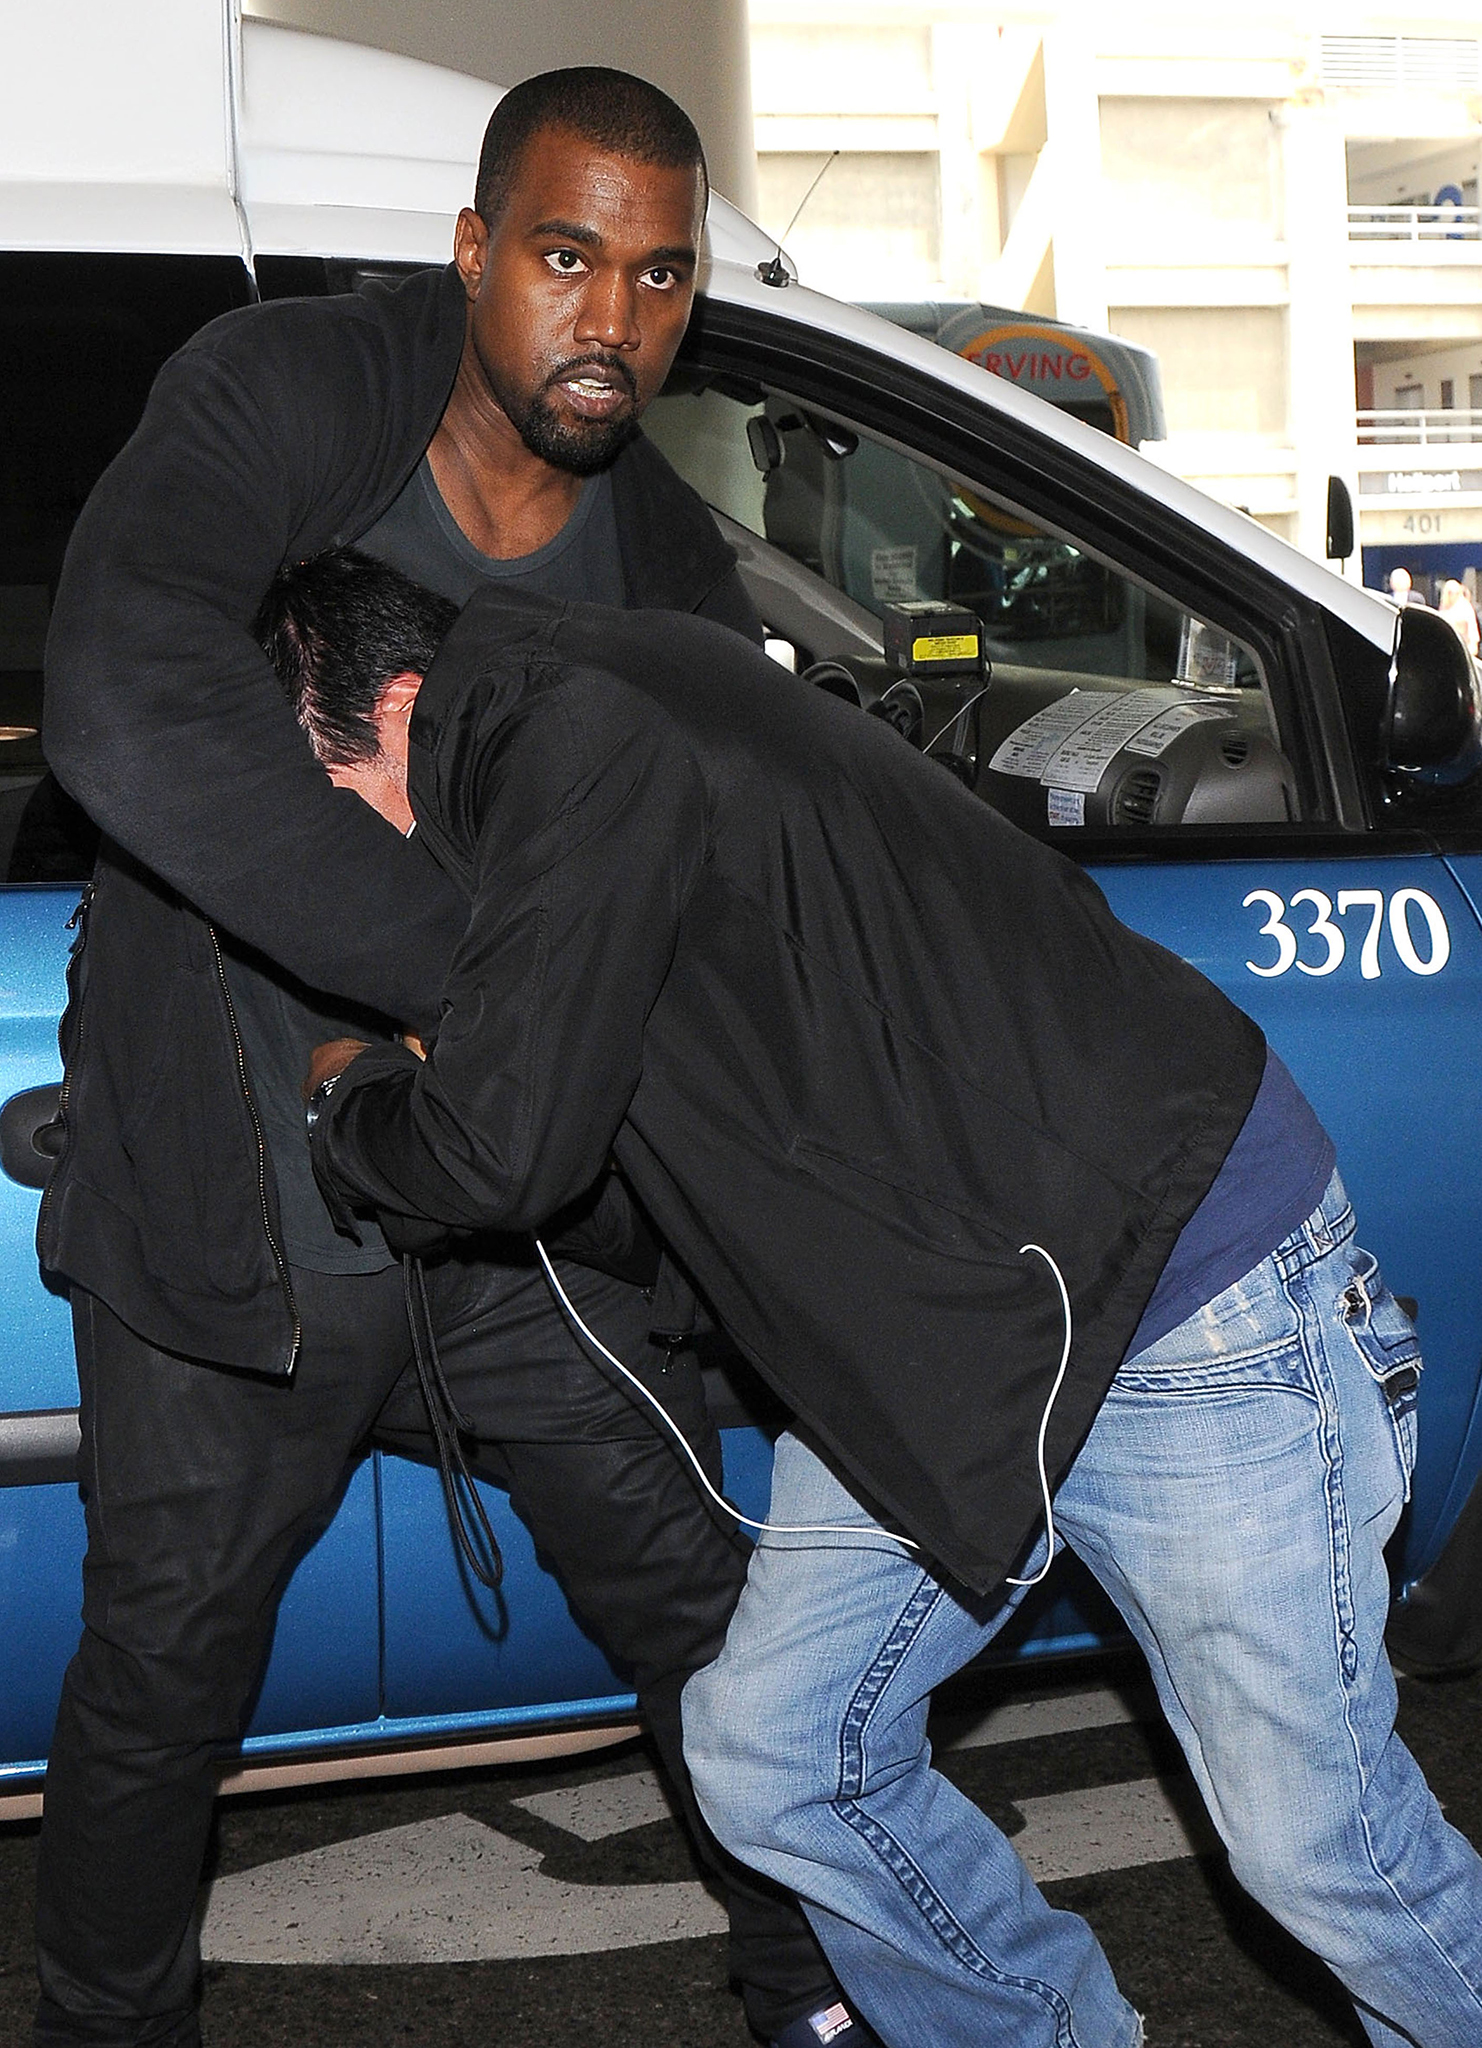 Kanye West at LAX on July 19. (FameFlynet)